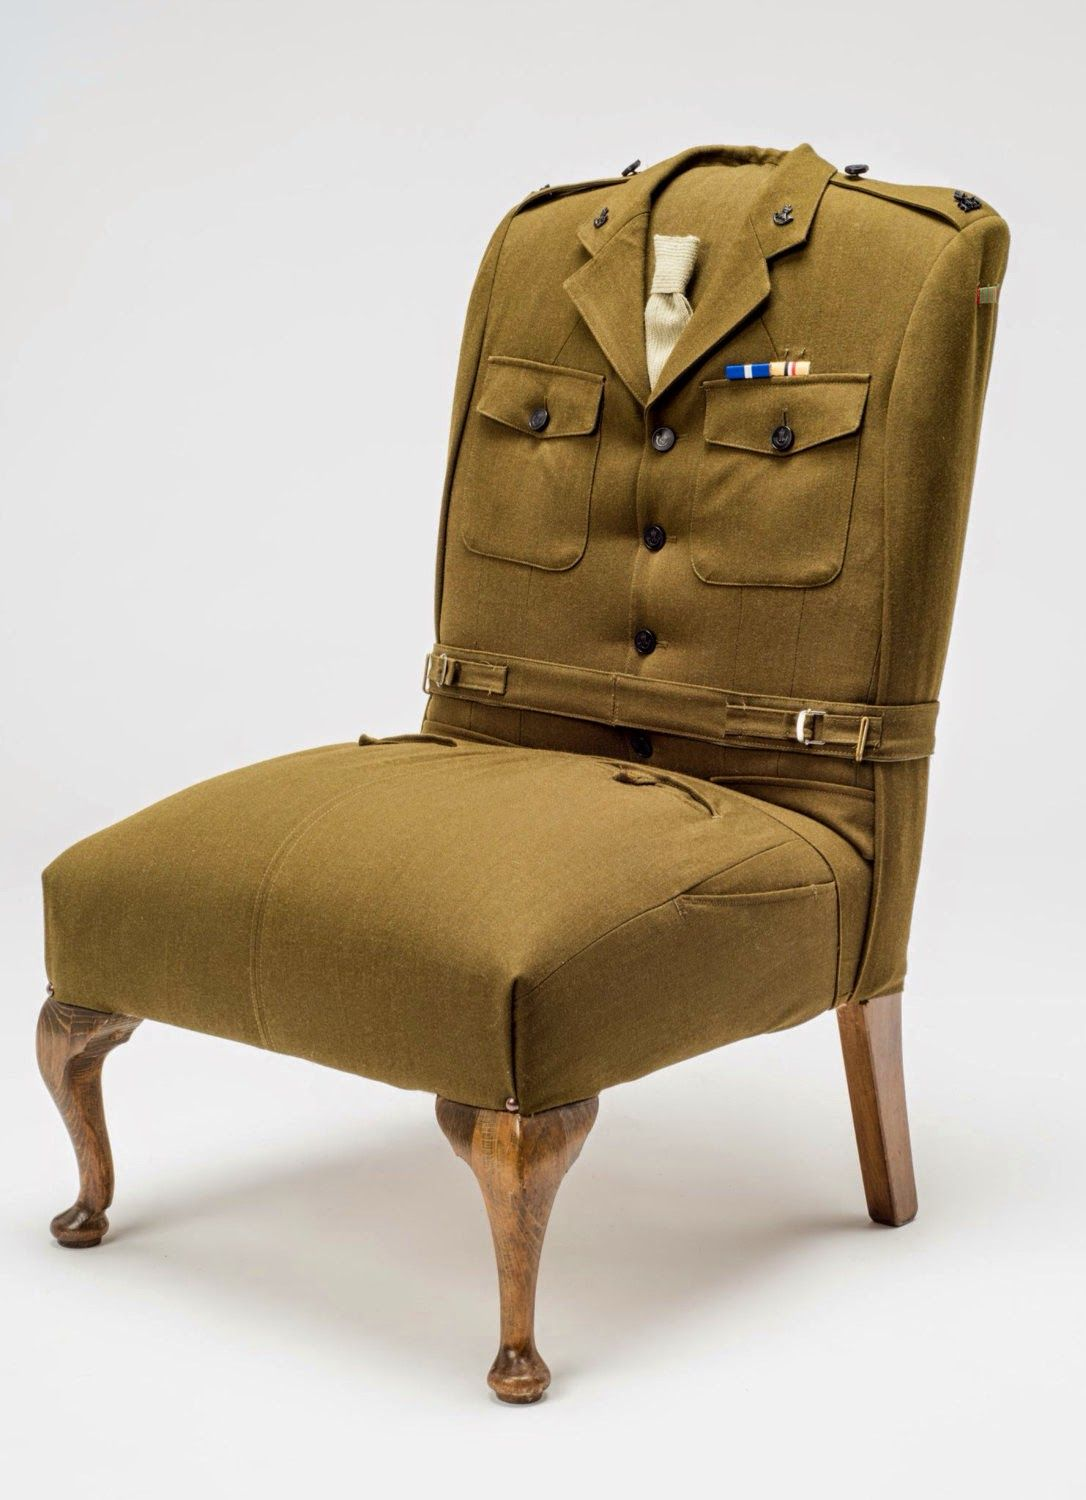 vintage arm chair antique bentwood chairs upcycled armchairs patchwork furniture 10 british army uniform rescuedretrovintage www designstack co